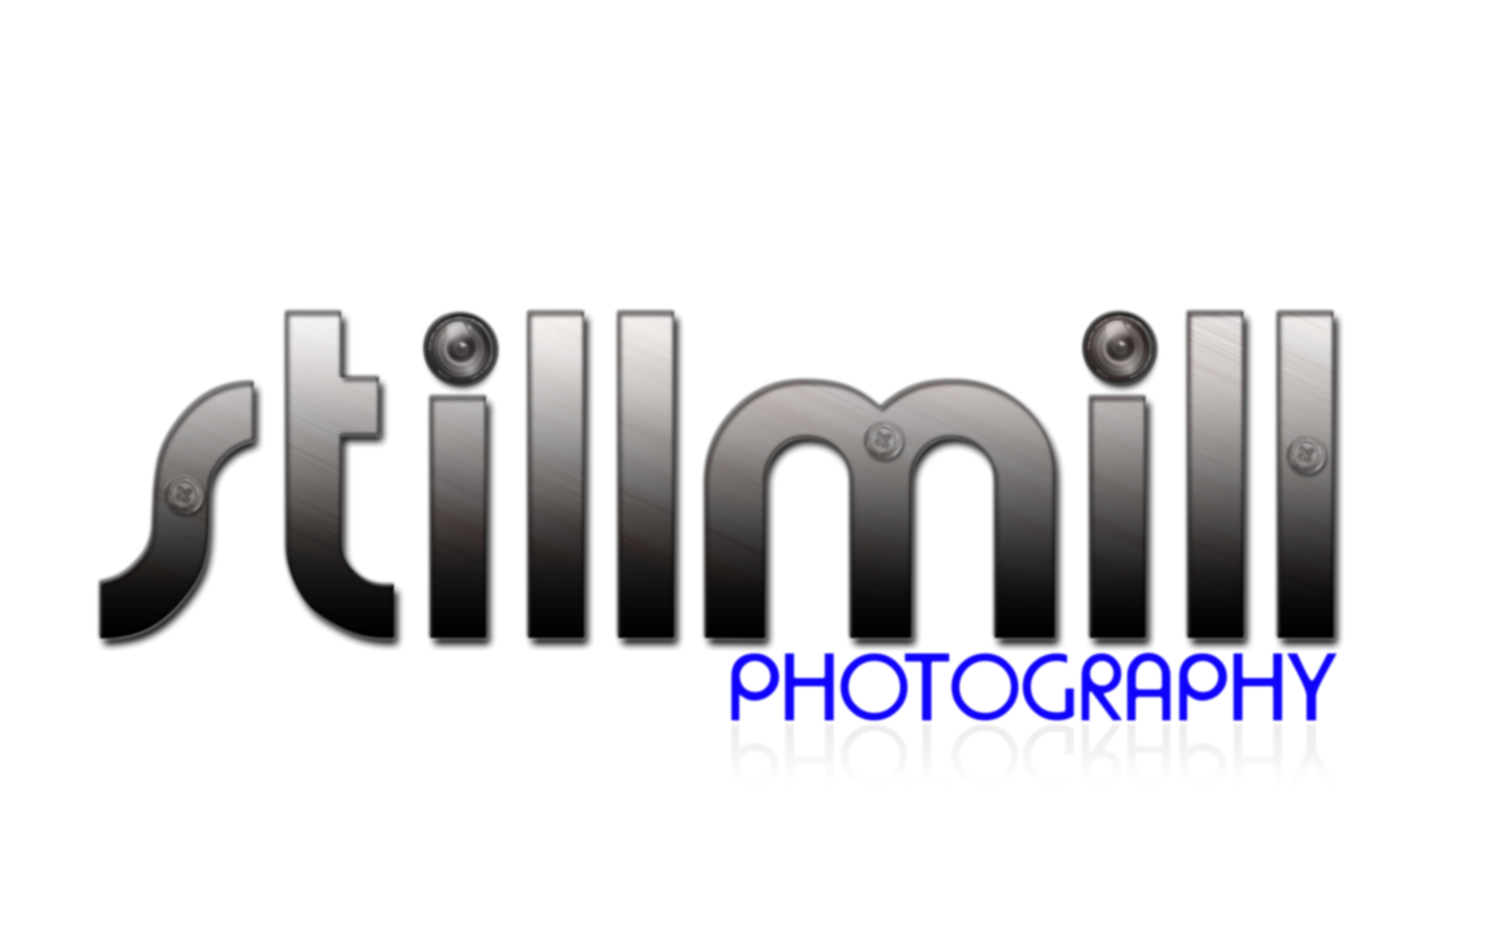 Stillmill Photography